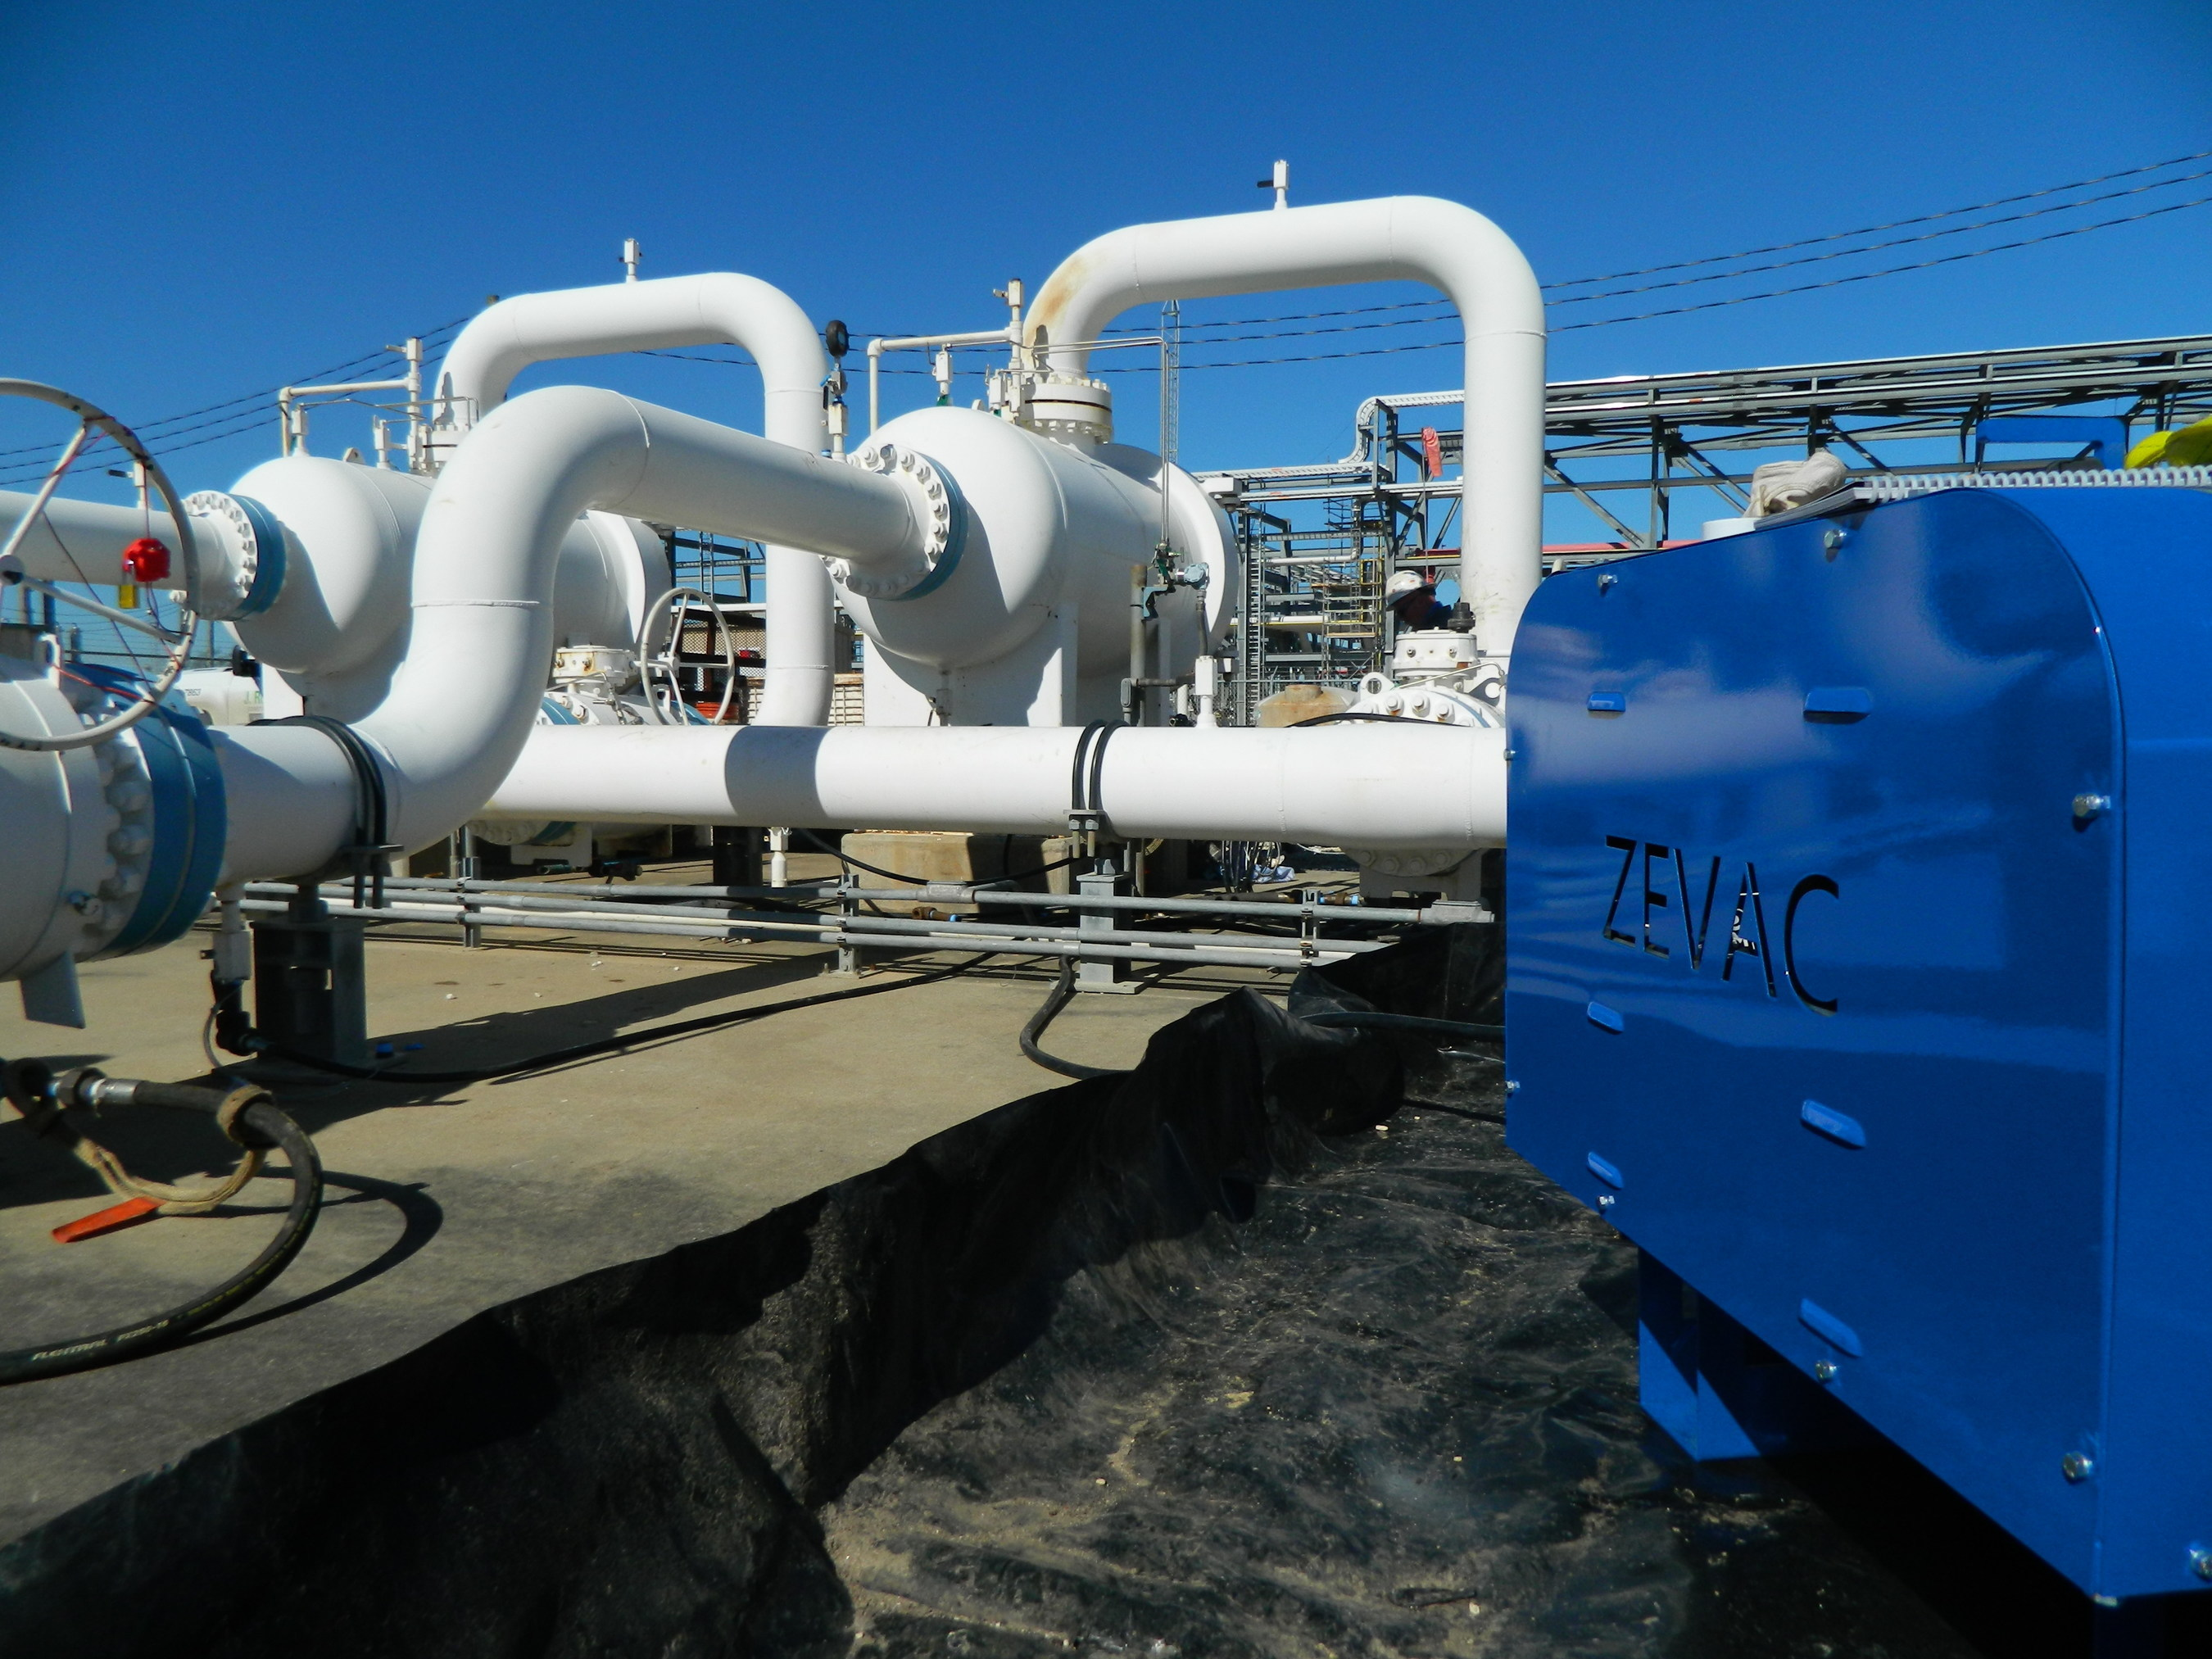 Dominion Energy is using innovative technologies like ZEVAC® to capture, recycle and re-use methane in other parts of the system.